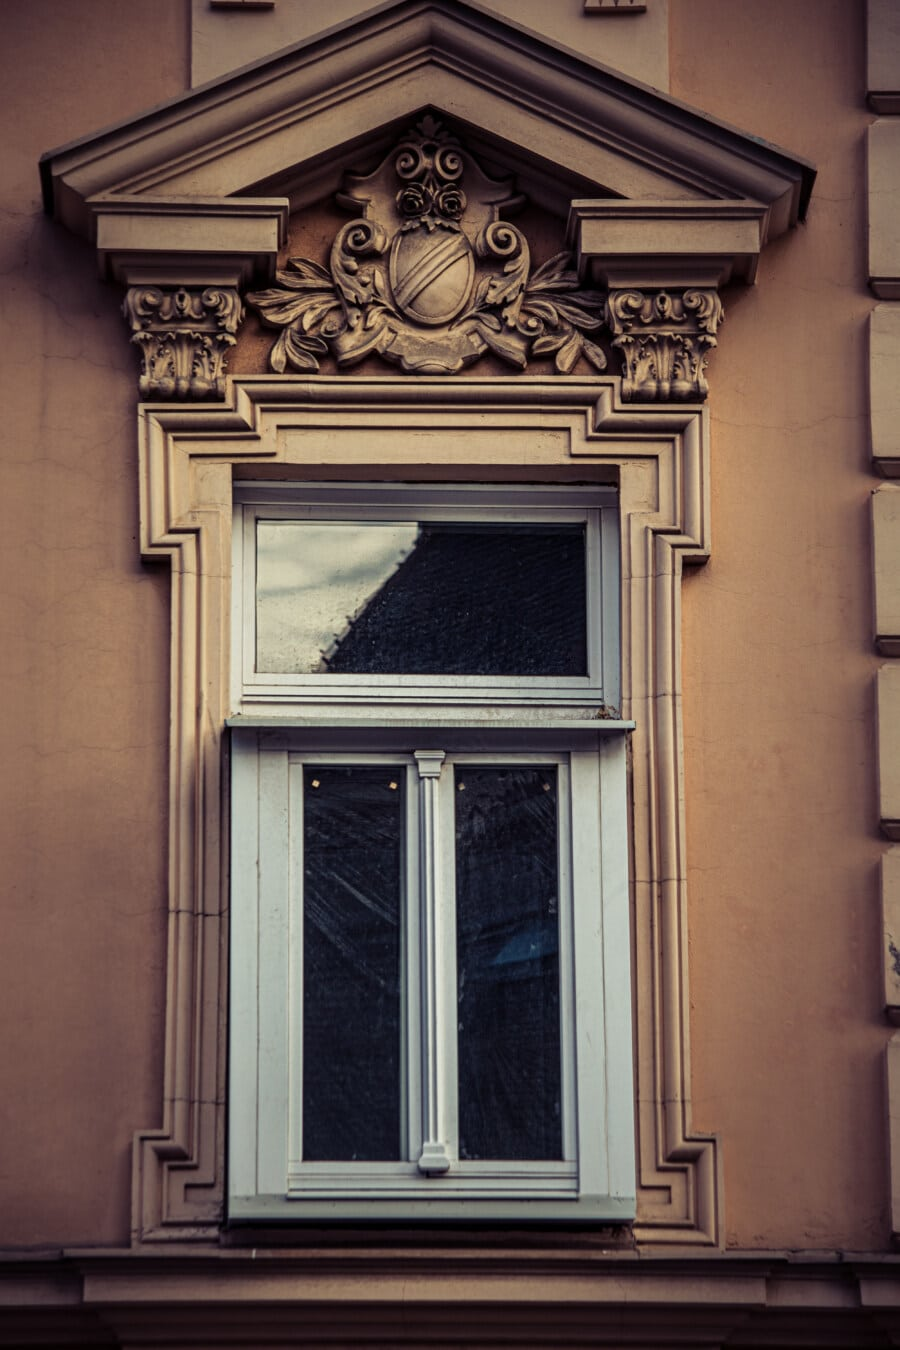 victorian, window, framework, architectural style, classic, architecture, facade, antique, old, wall